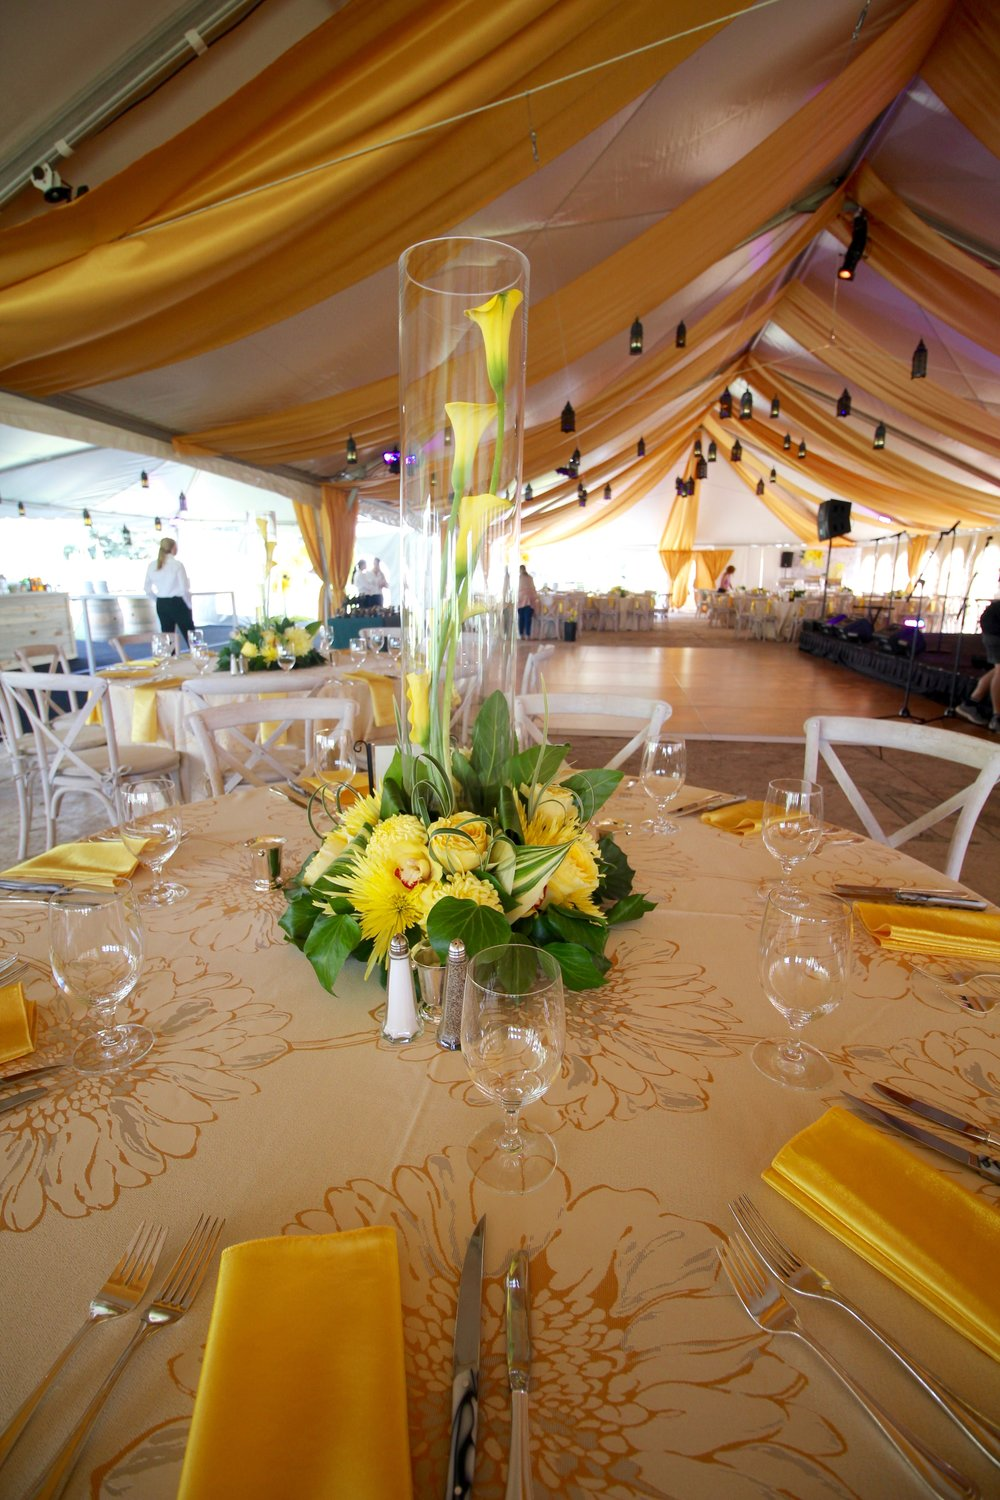 vail valley's choice corporate event florist